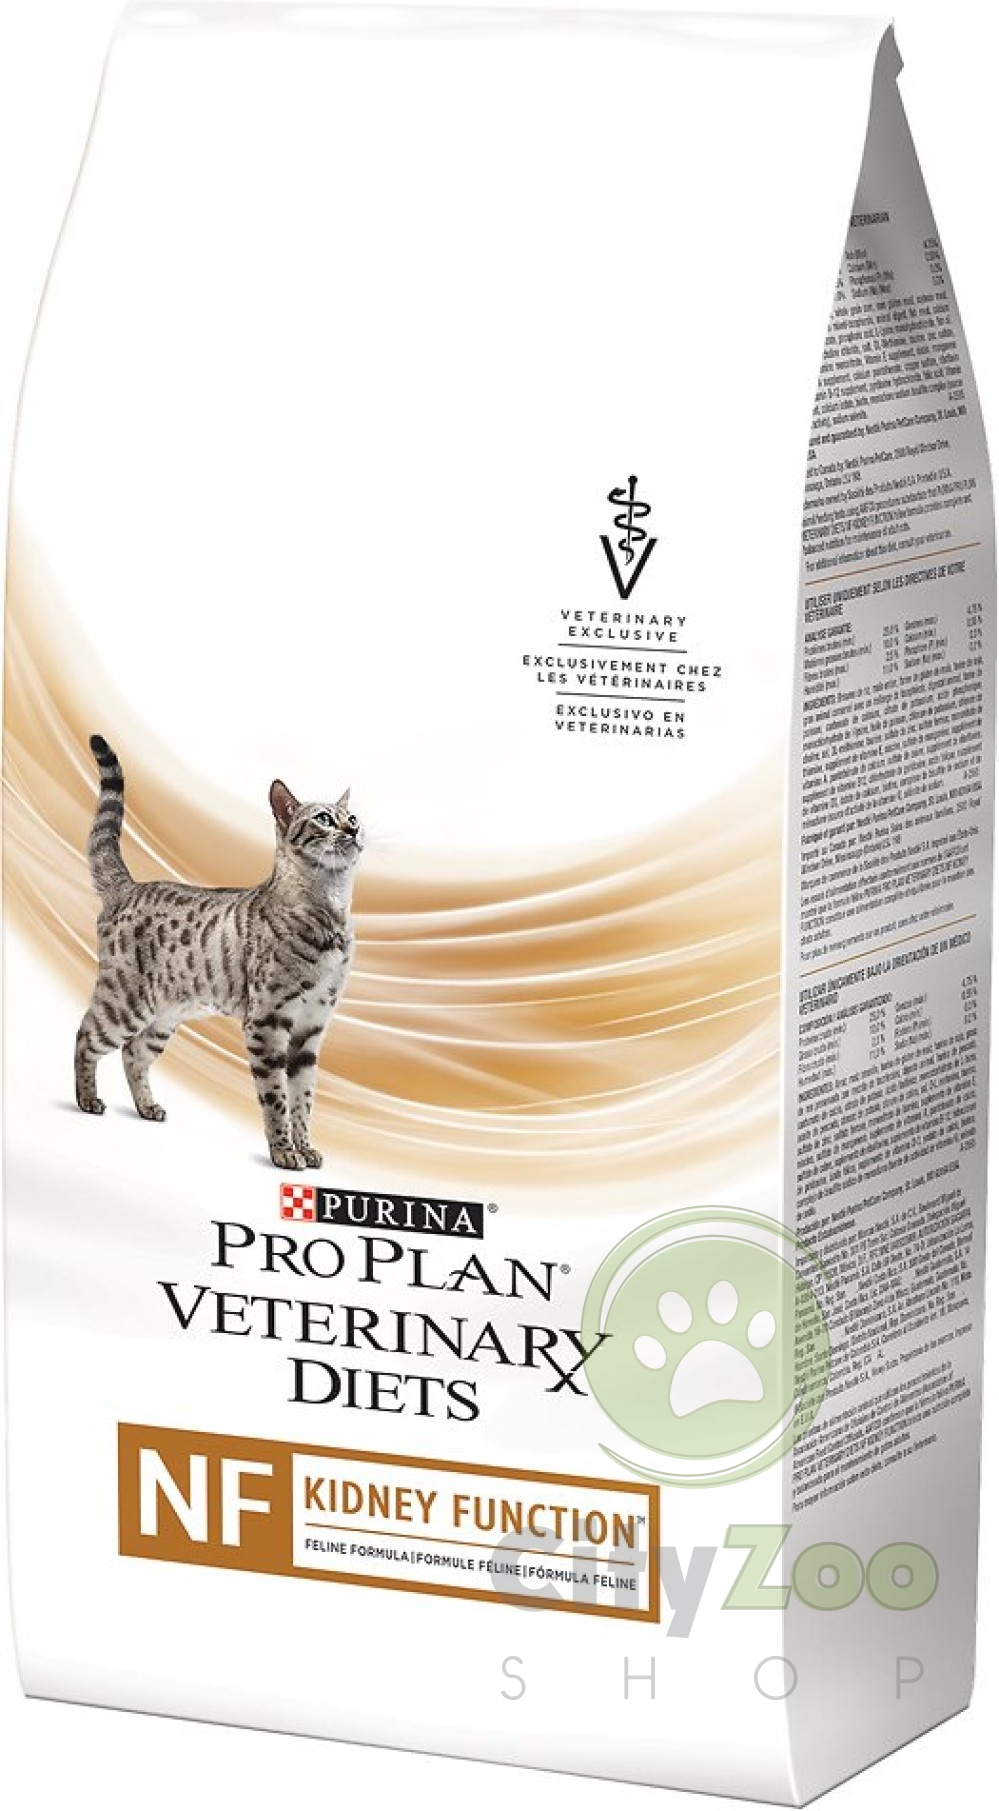 zoo/Purina_Veterinary_Diets_NF_Kidney_Function_Feline_Formula